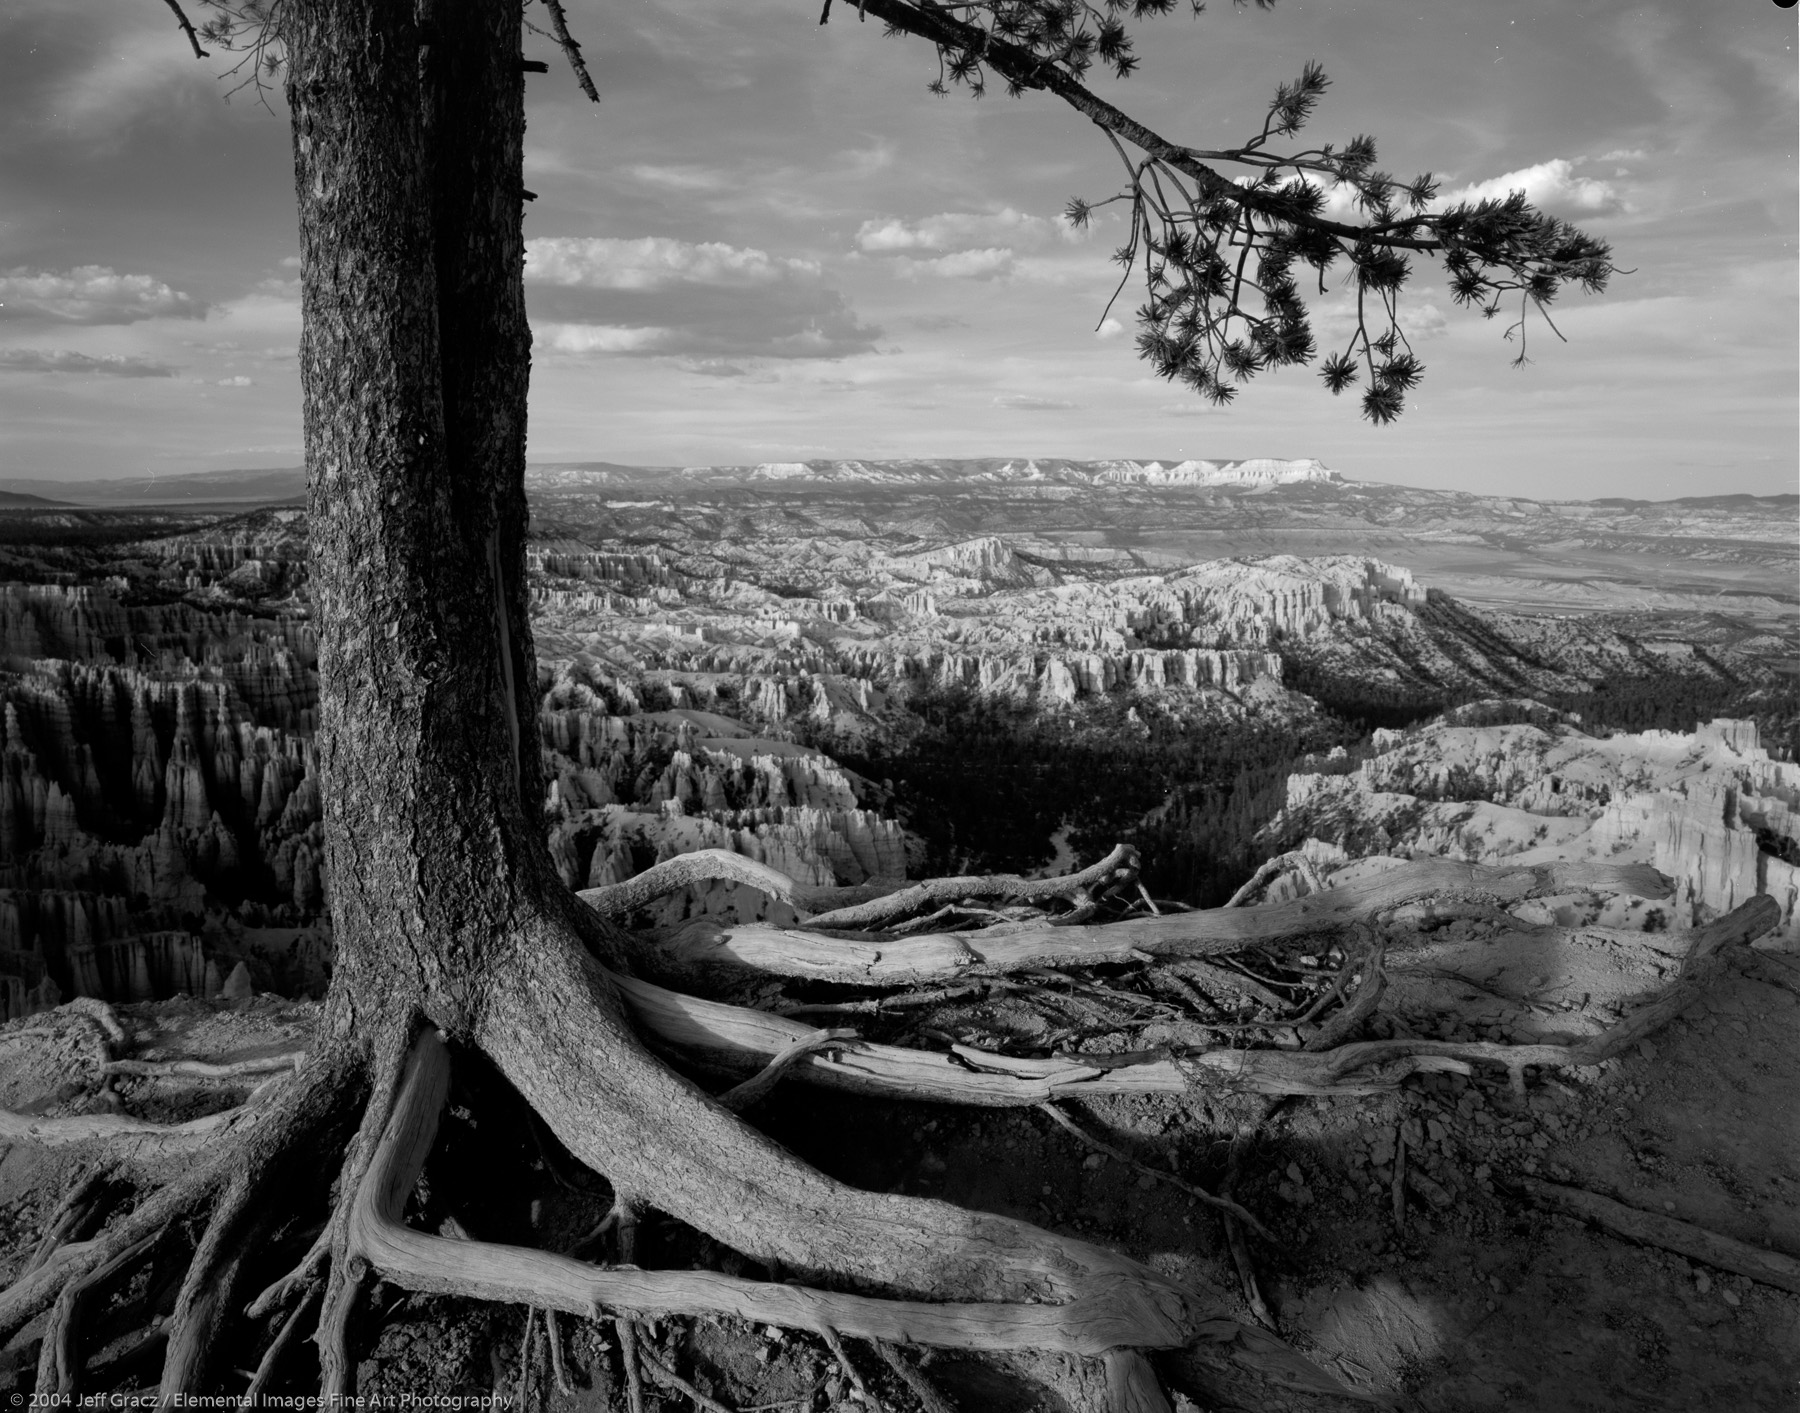 view from bryce canyon rim |  | UT | usa - © © 2004 Jeff Gracz / Elemental Images Fine Art Photography - All Rights Reserved Worldwide